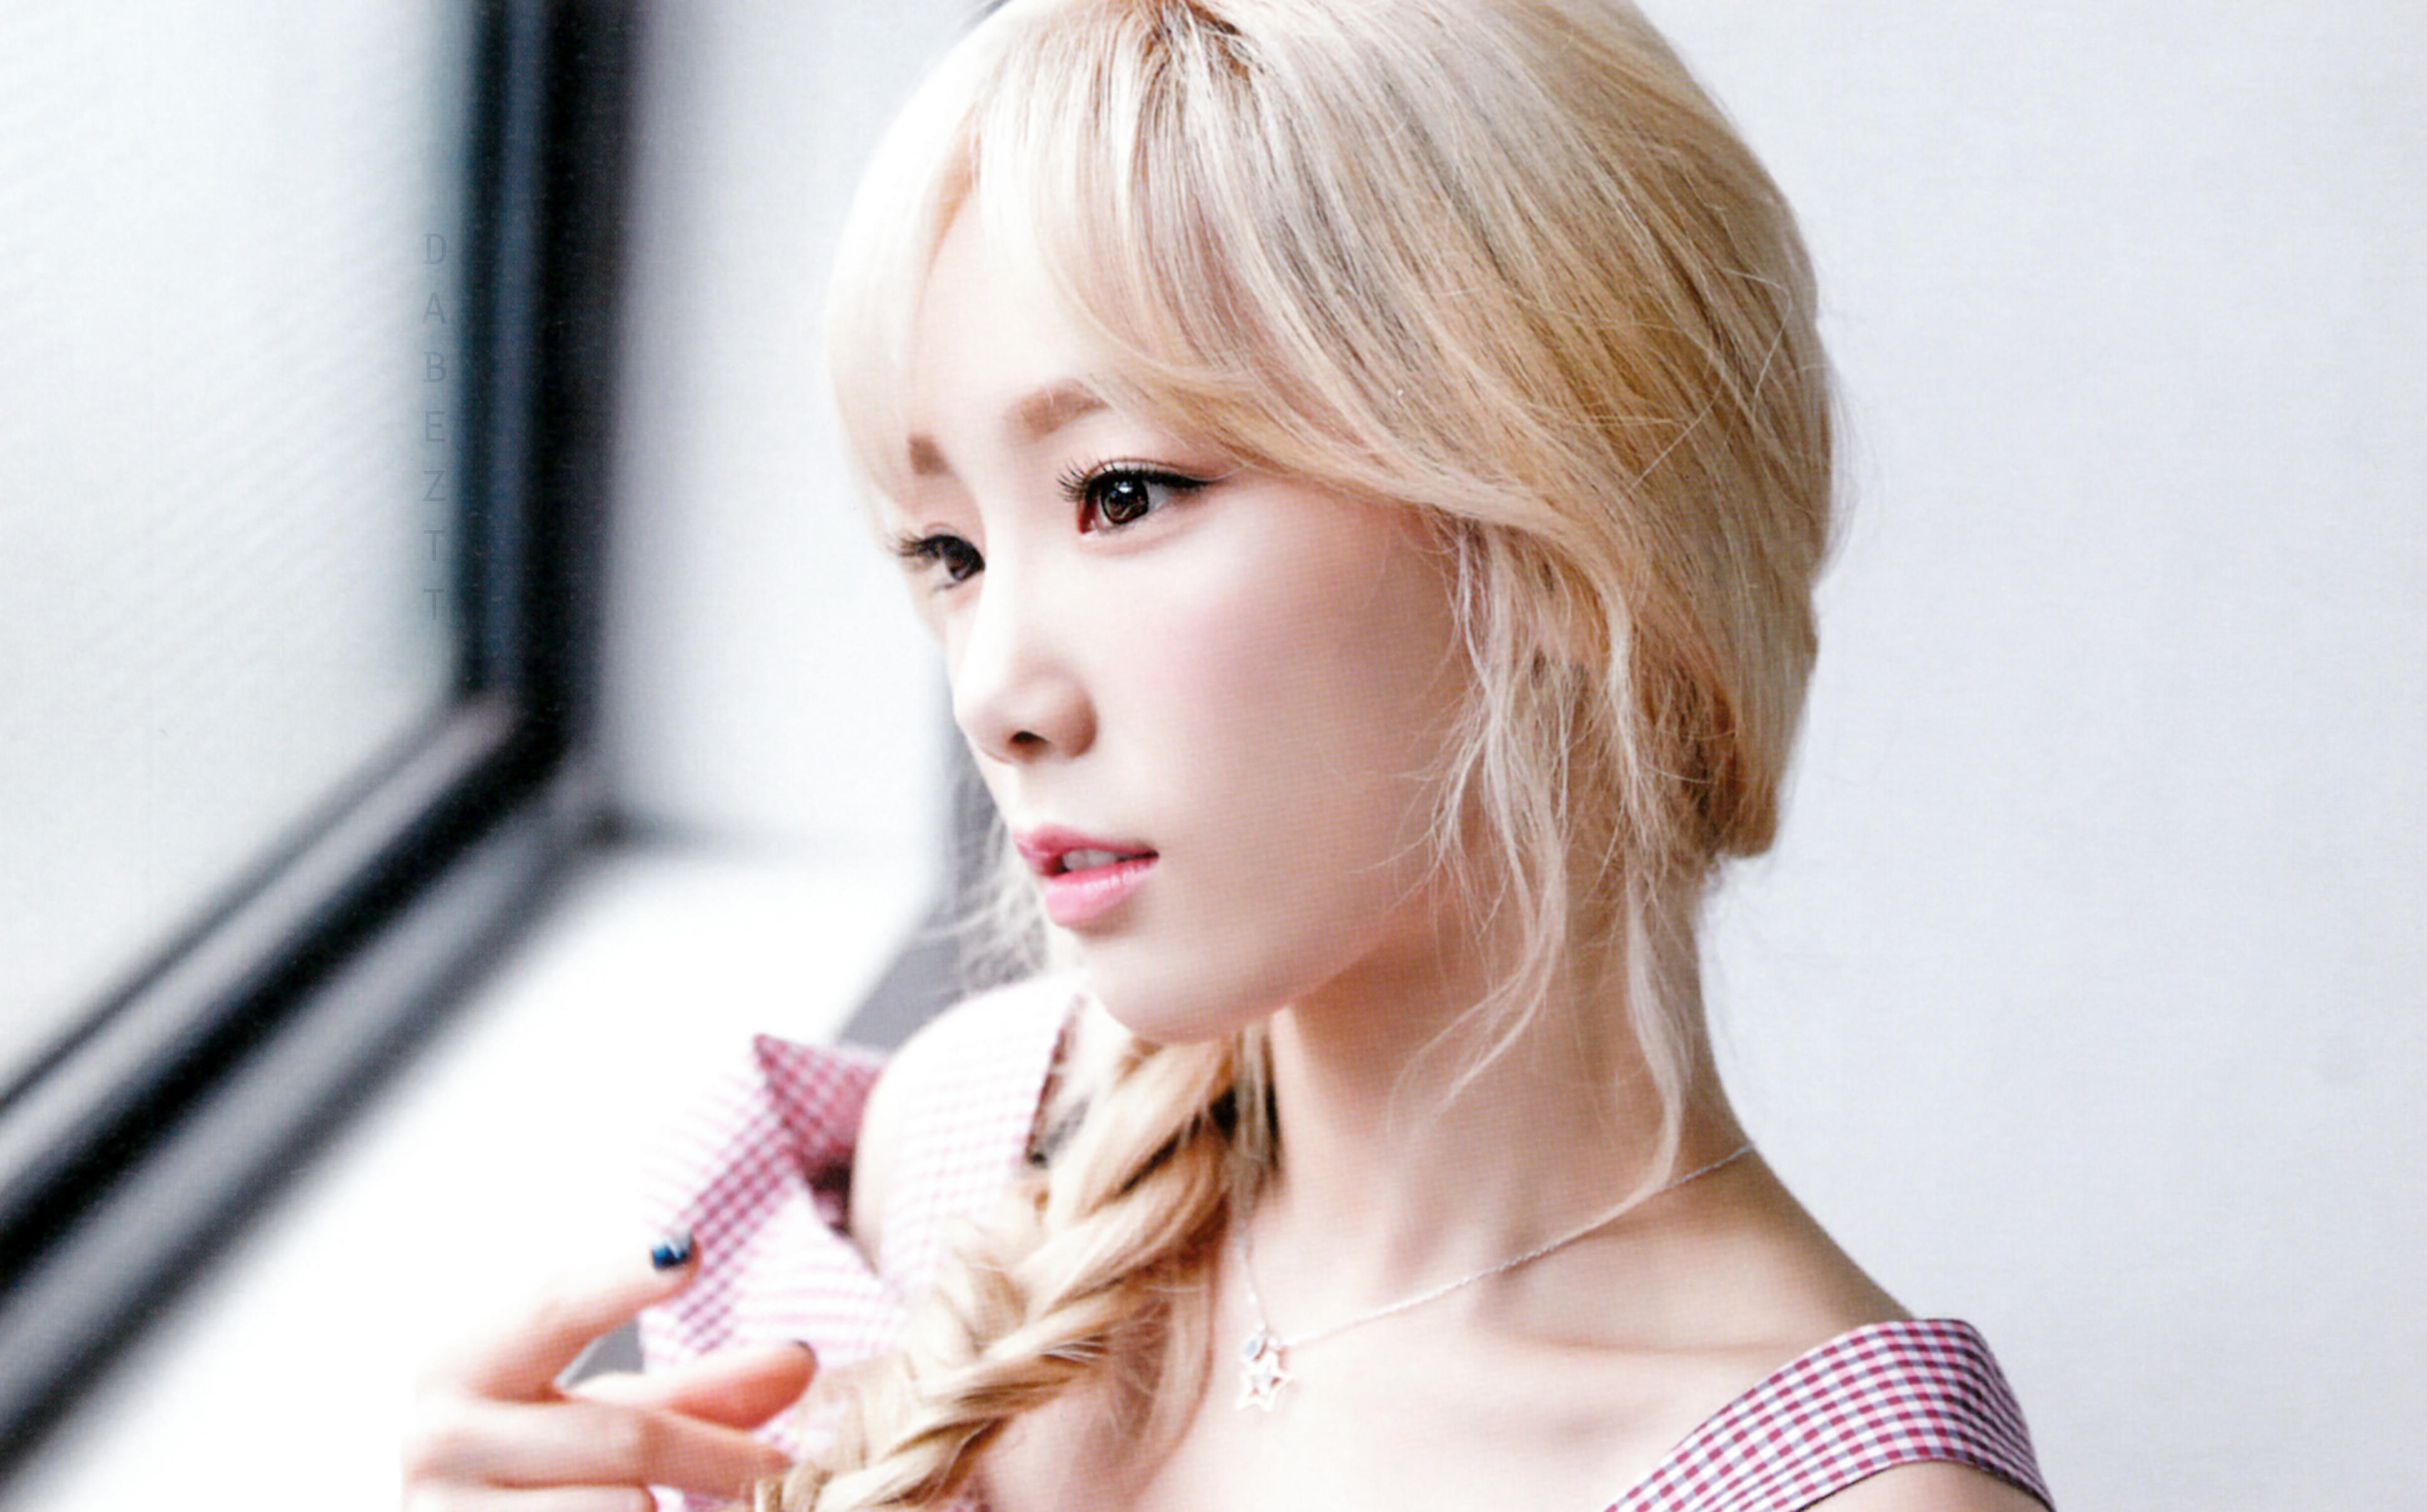 Amazing Taeyeon Pictures & Backgrounds